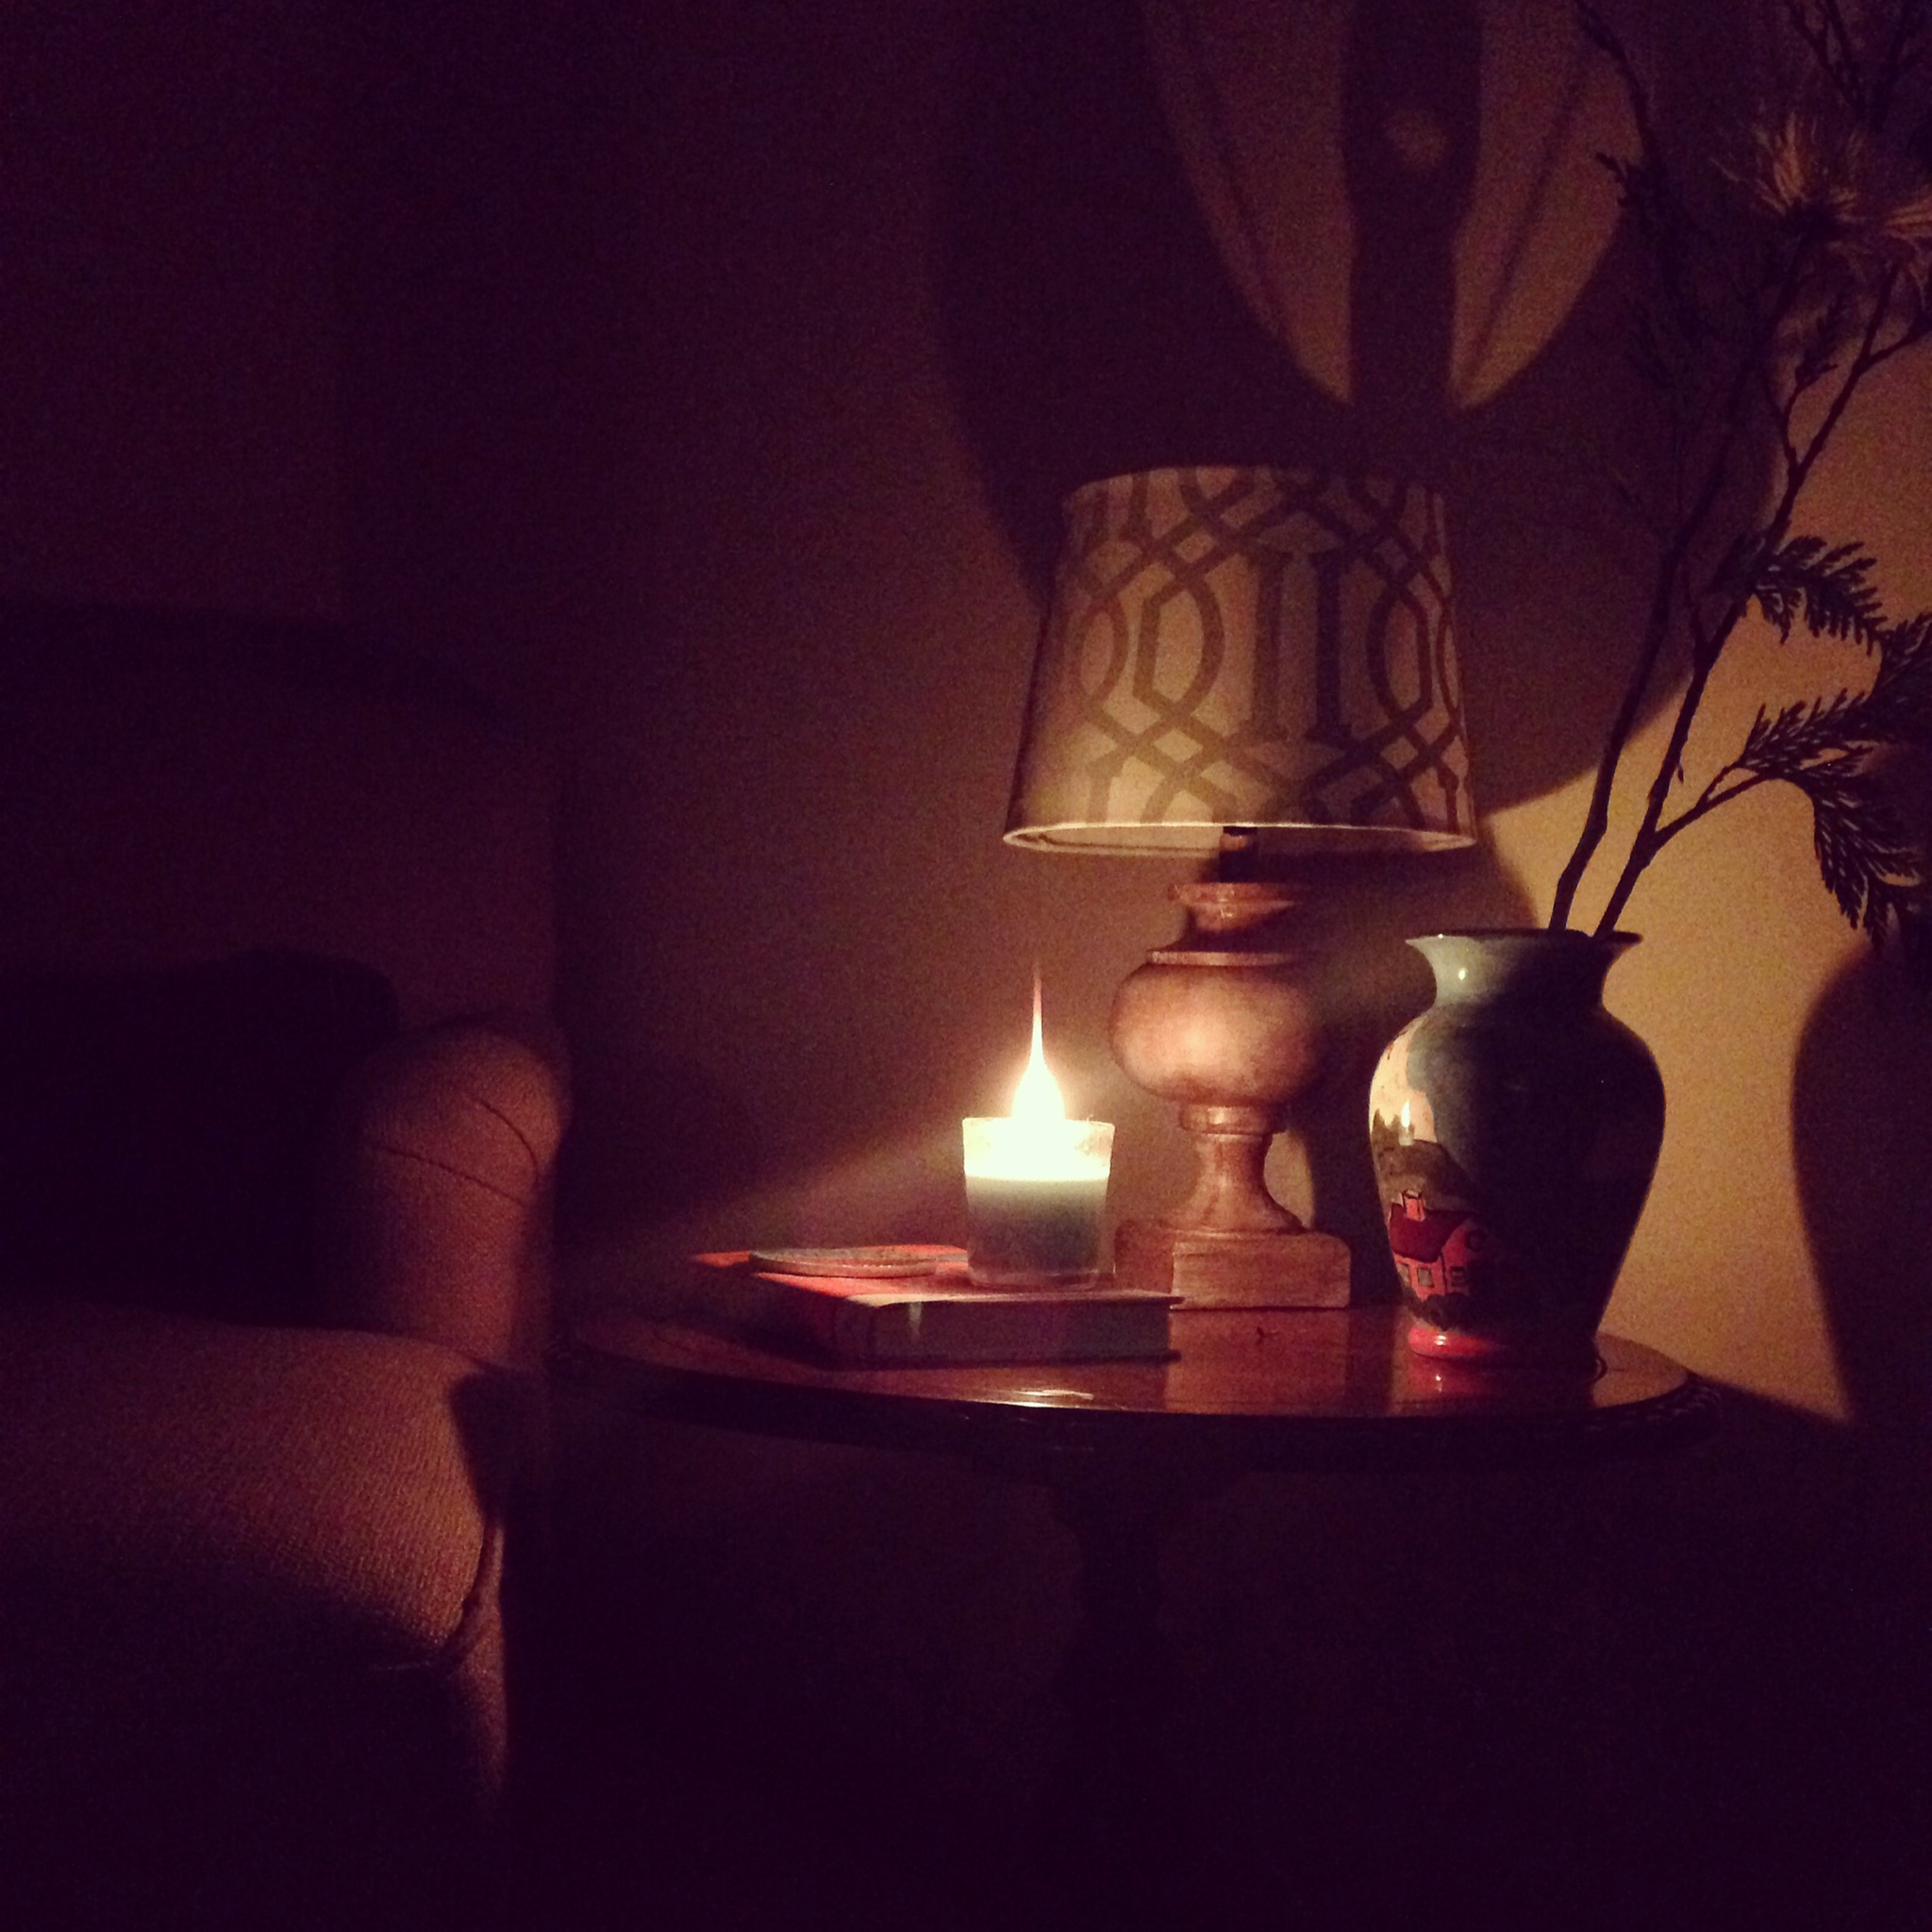 Set the stage...it's not just about the gentle movement of restorative yoga, it's about creating an atmosphere of calm. I find it makes a big difference when I turn on my infuser and light some candles. Ahhh... zen never felt so good.